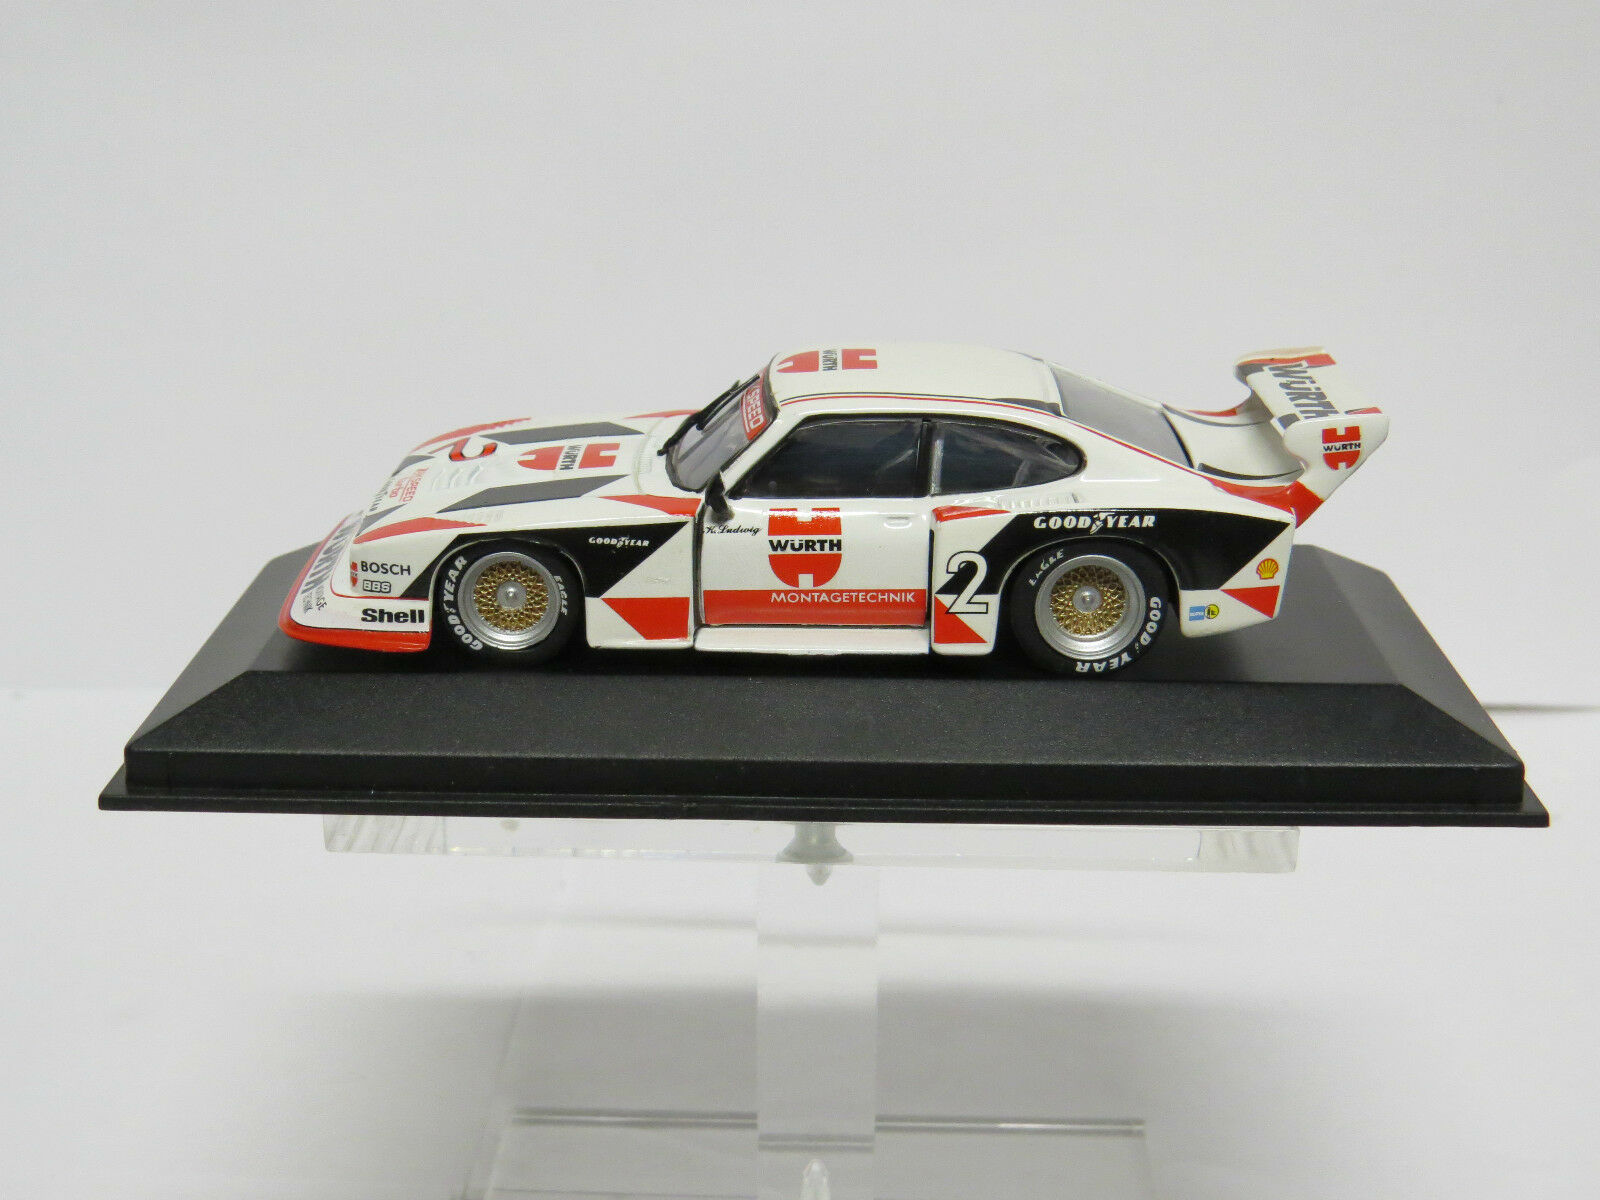 Ford Capri Turbo Gr.5 Würth 1981 K. Ludwig 1 43 Minichamps 430818502